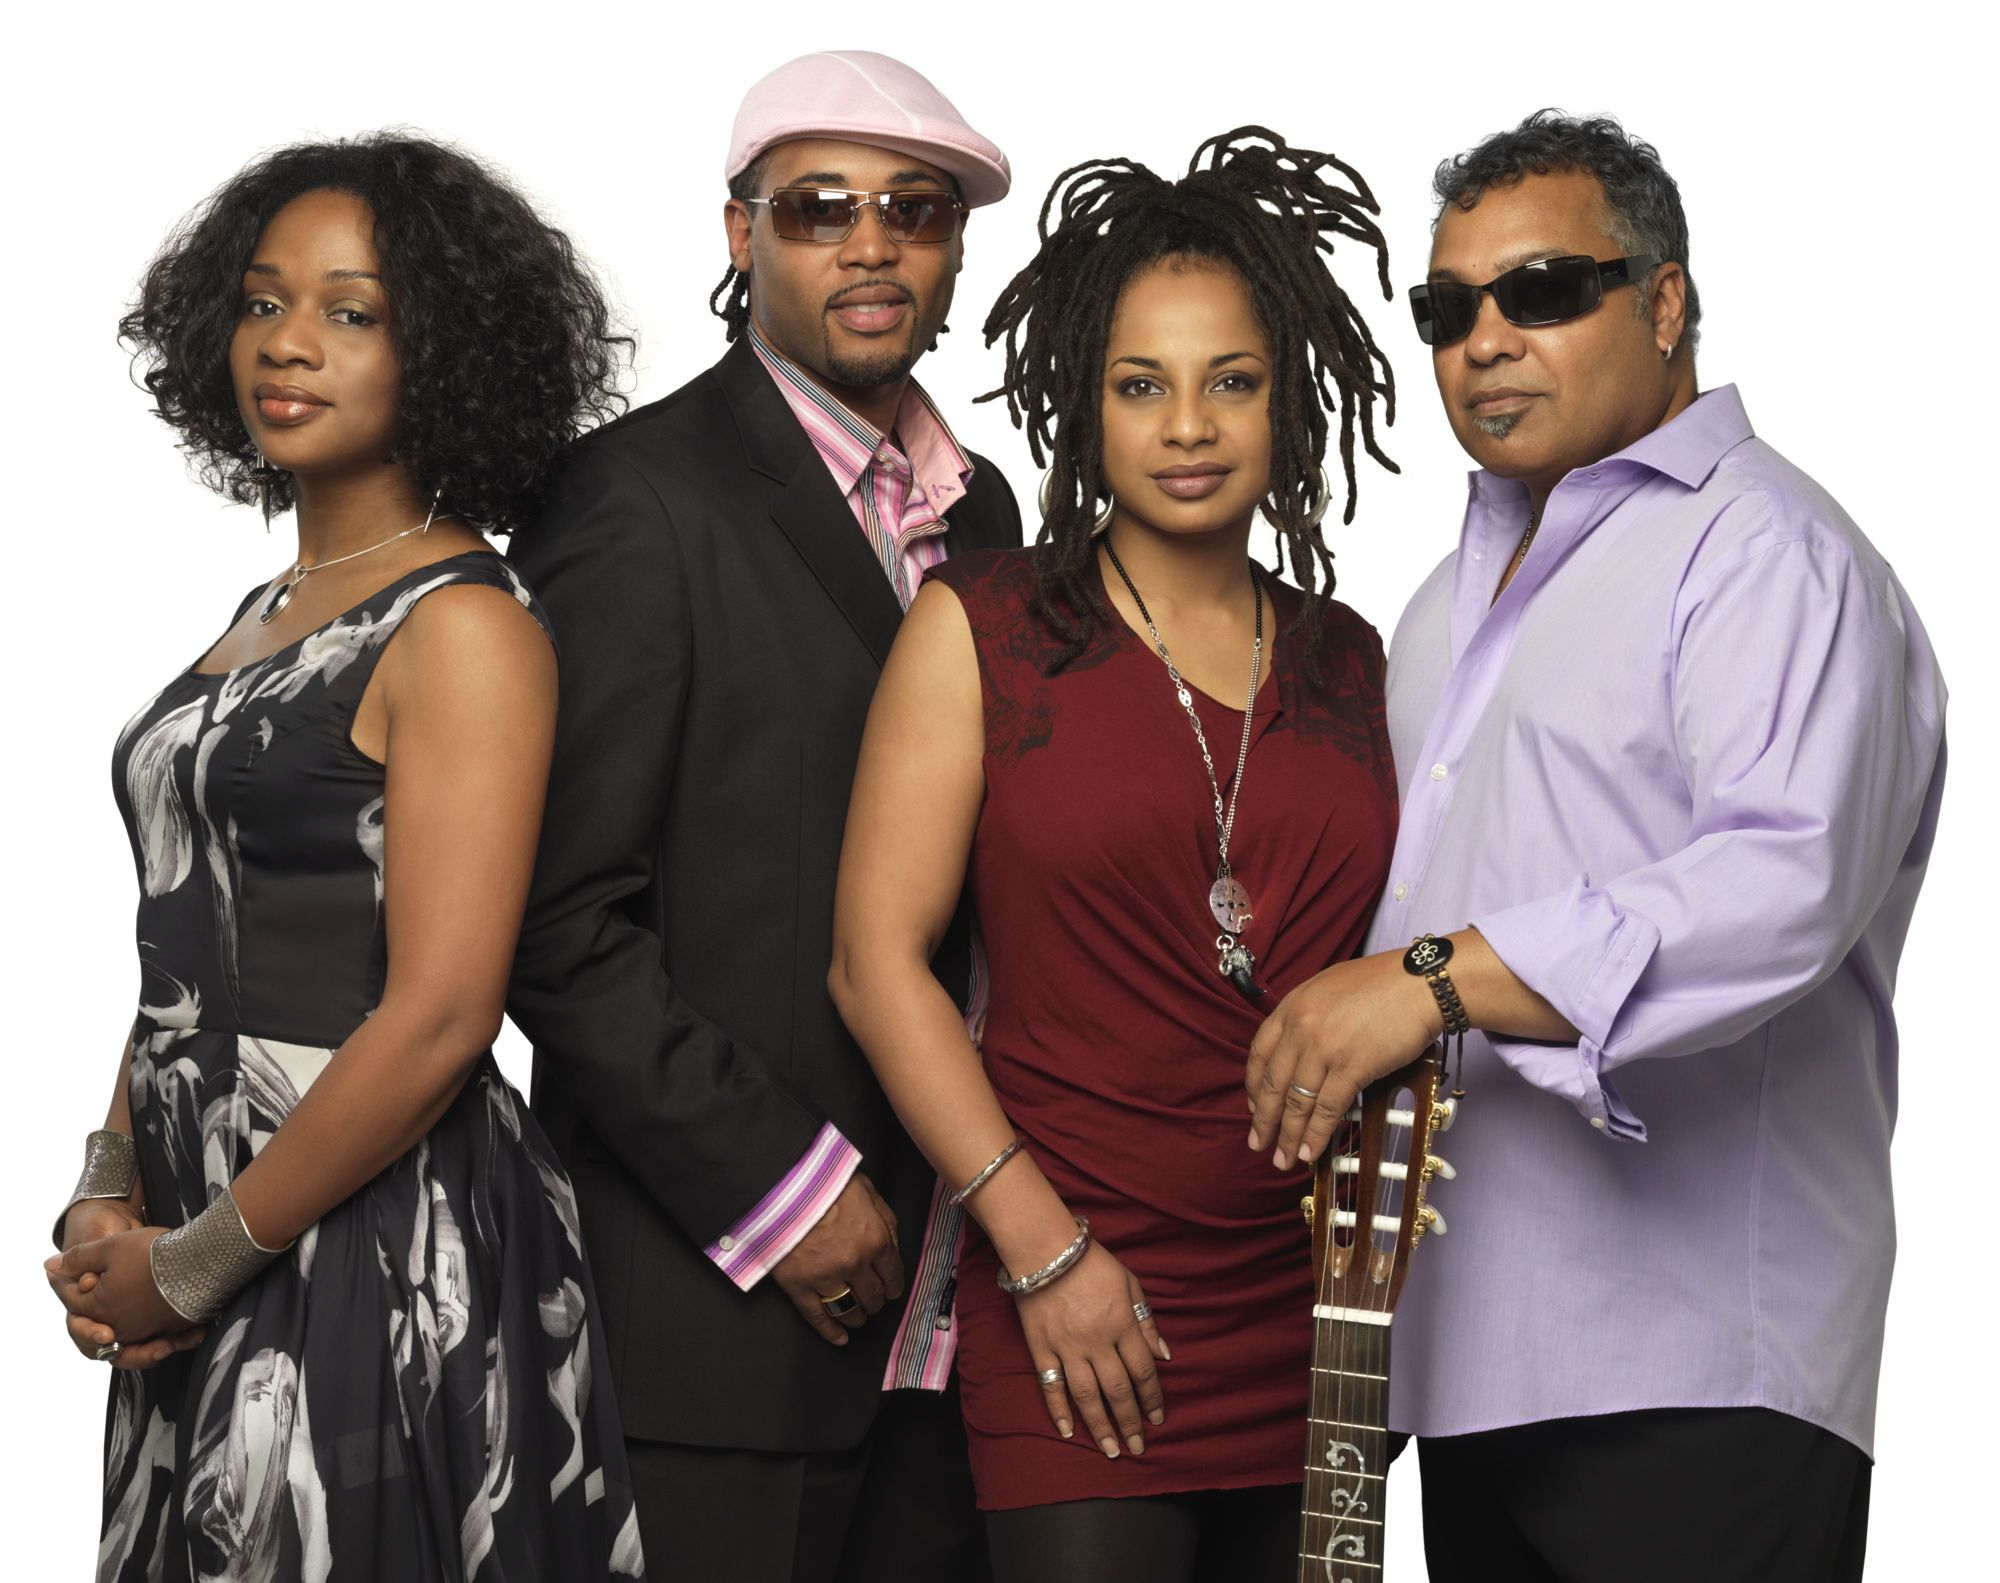 Incognito An Amazing Jazz Funk Band Have Loved Them Since Early 90 S Jazz Musicians Jazz Funk Entertainment Music